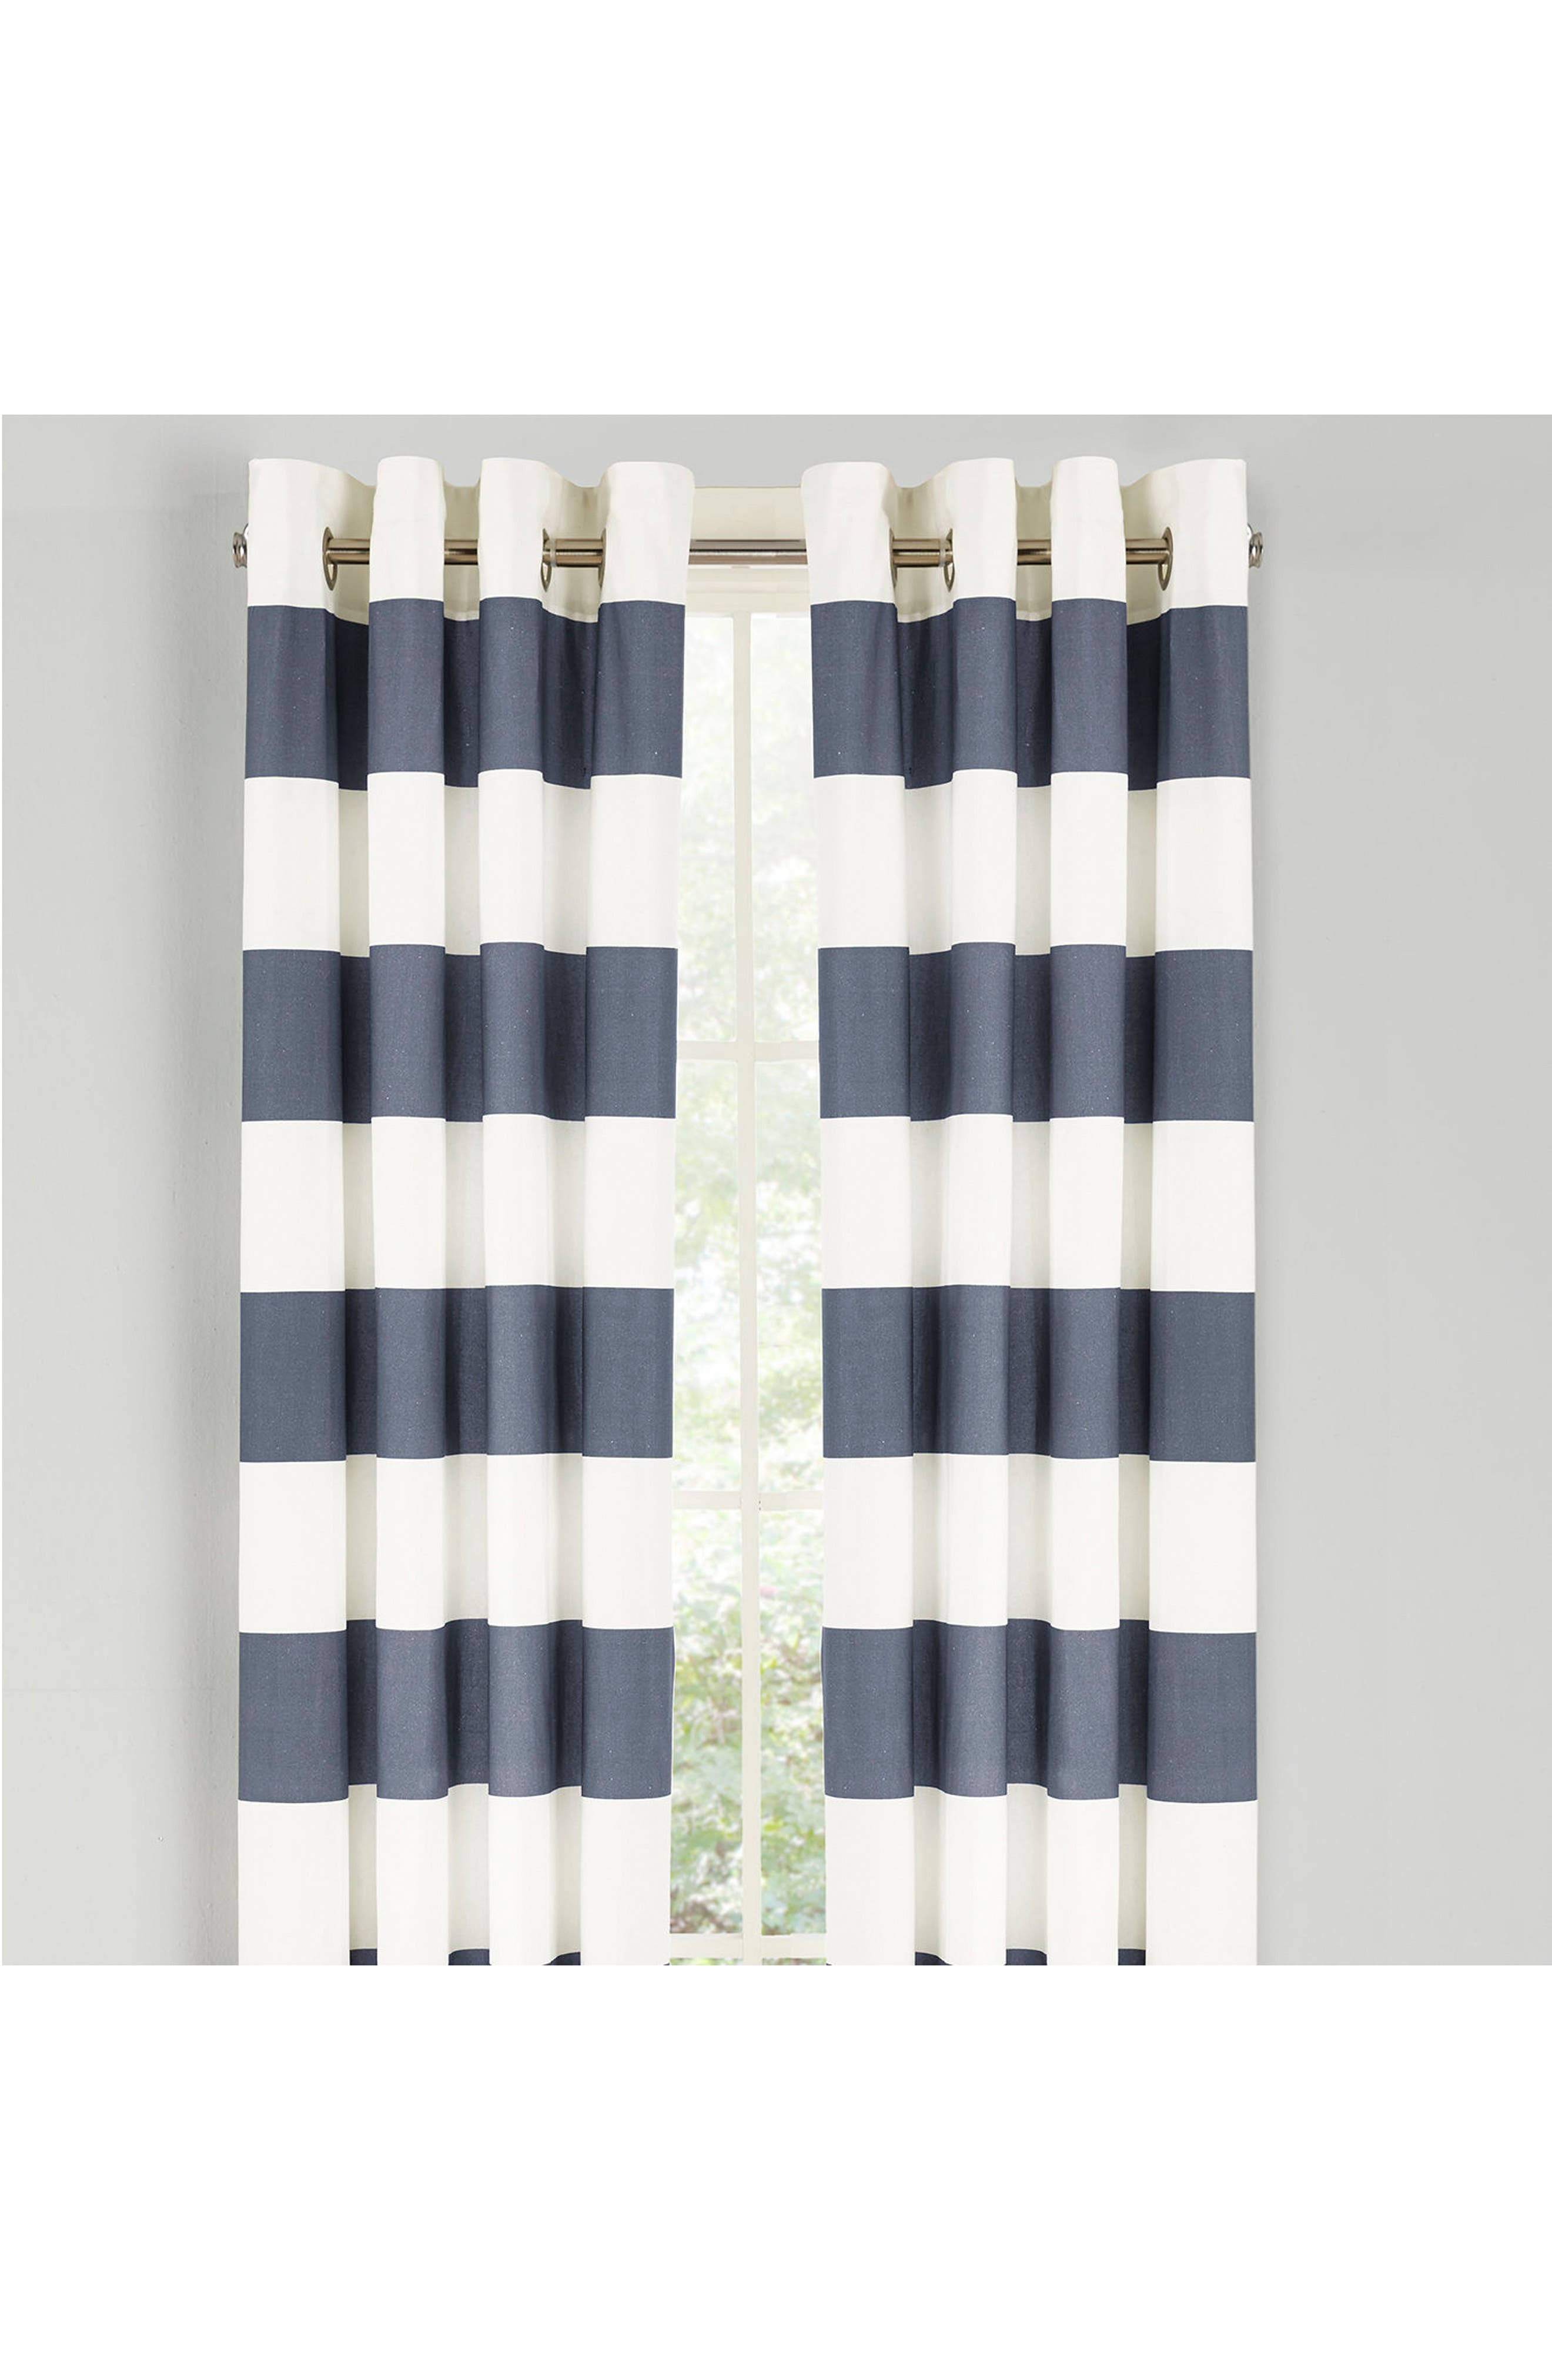 unbelievable uncategorized valances concept that valance styles plaid sense treatments your for splendid design pict window xfile interior and reflects